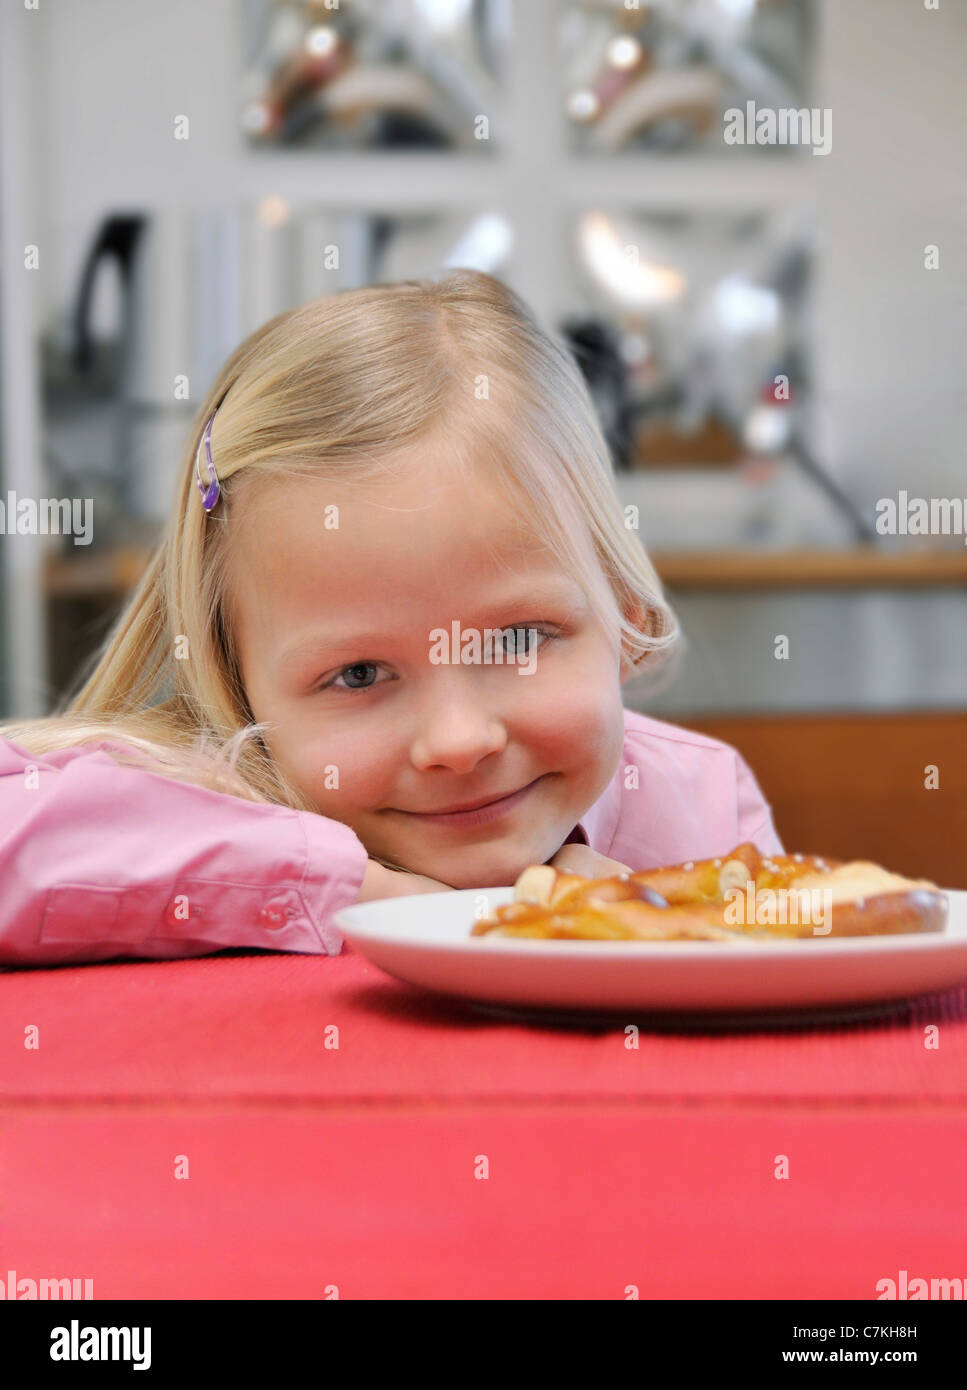 Young girl, 6, sitting at a table - Stock Image